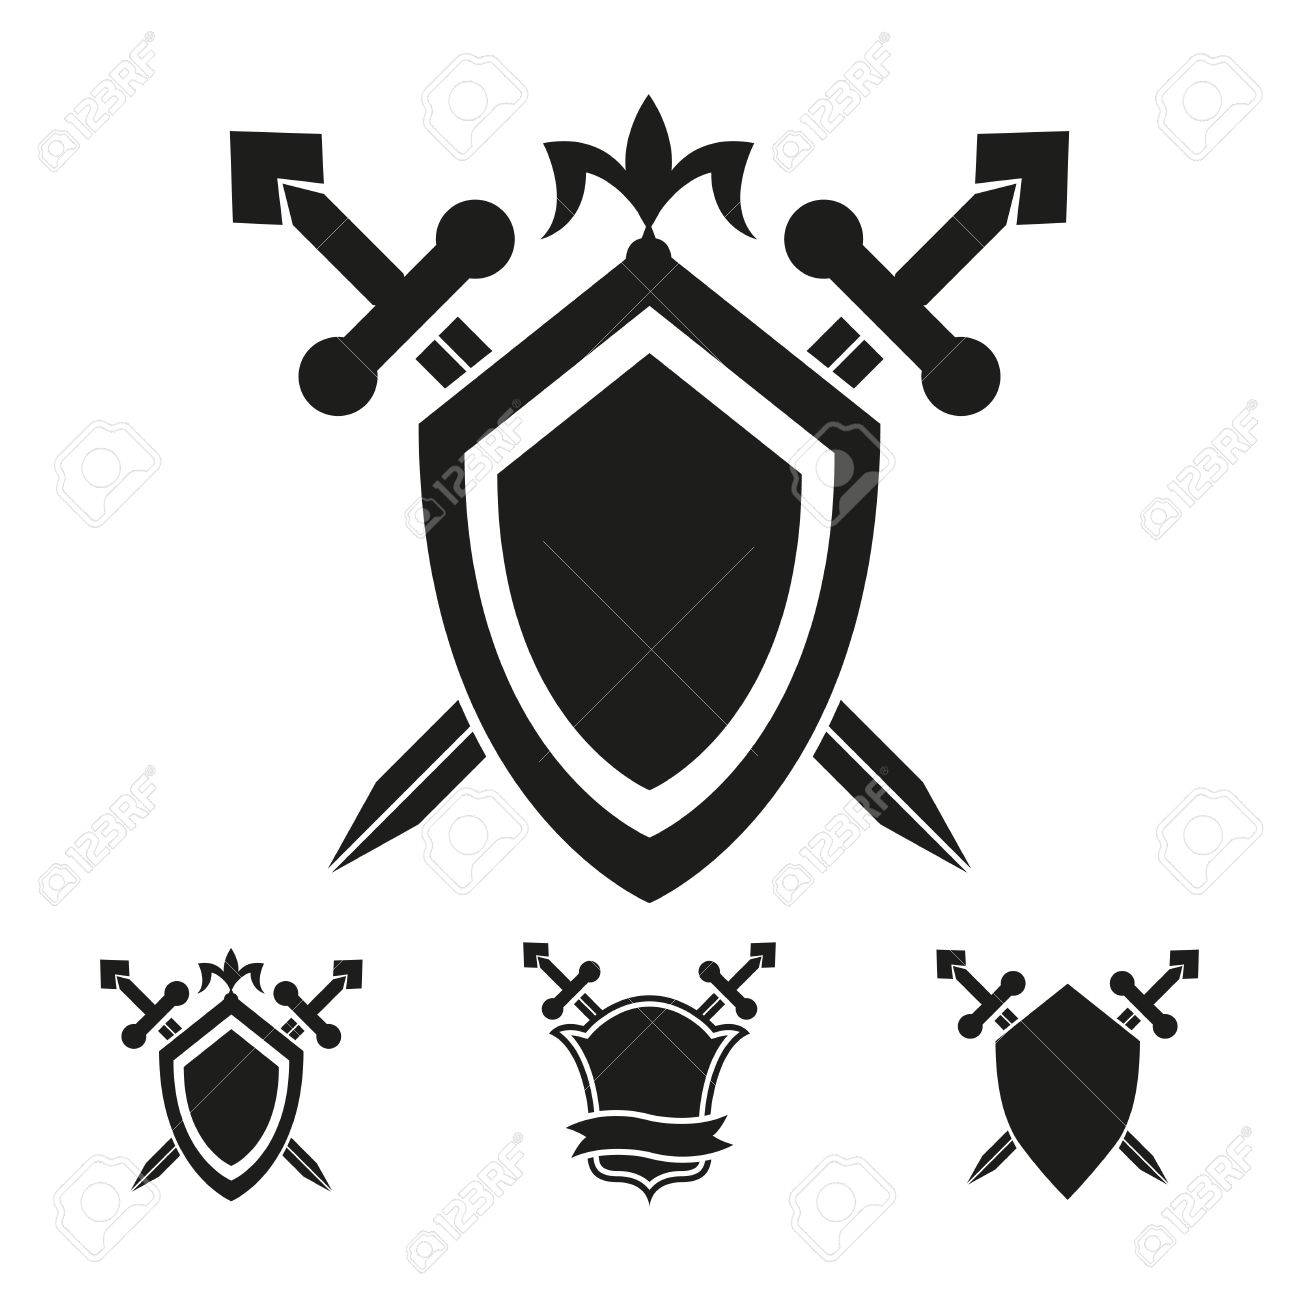 coat of arms medieval knight shield vector templates royalty free